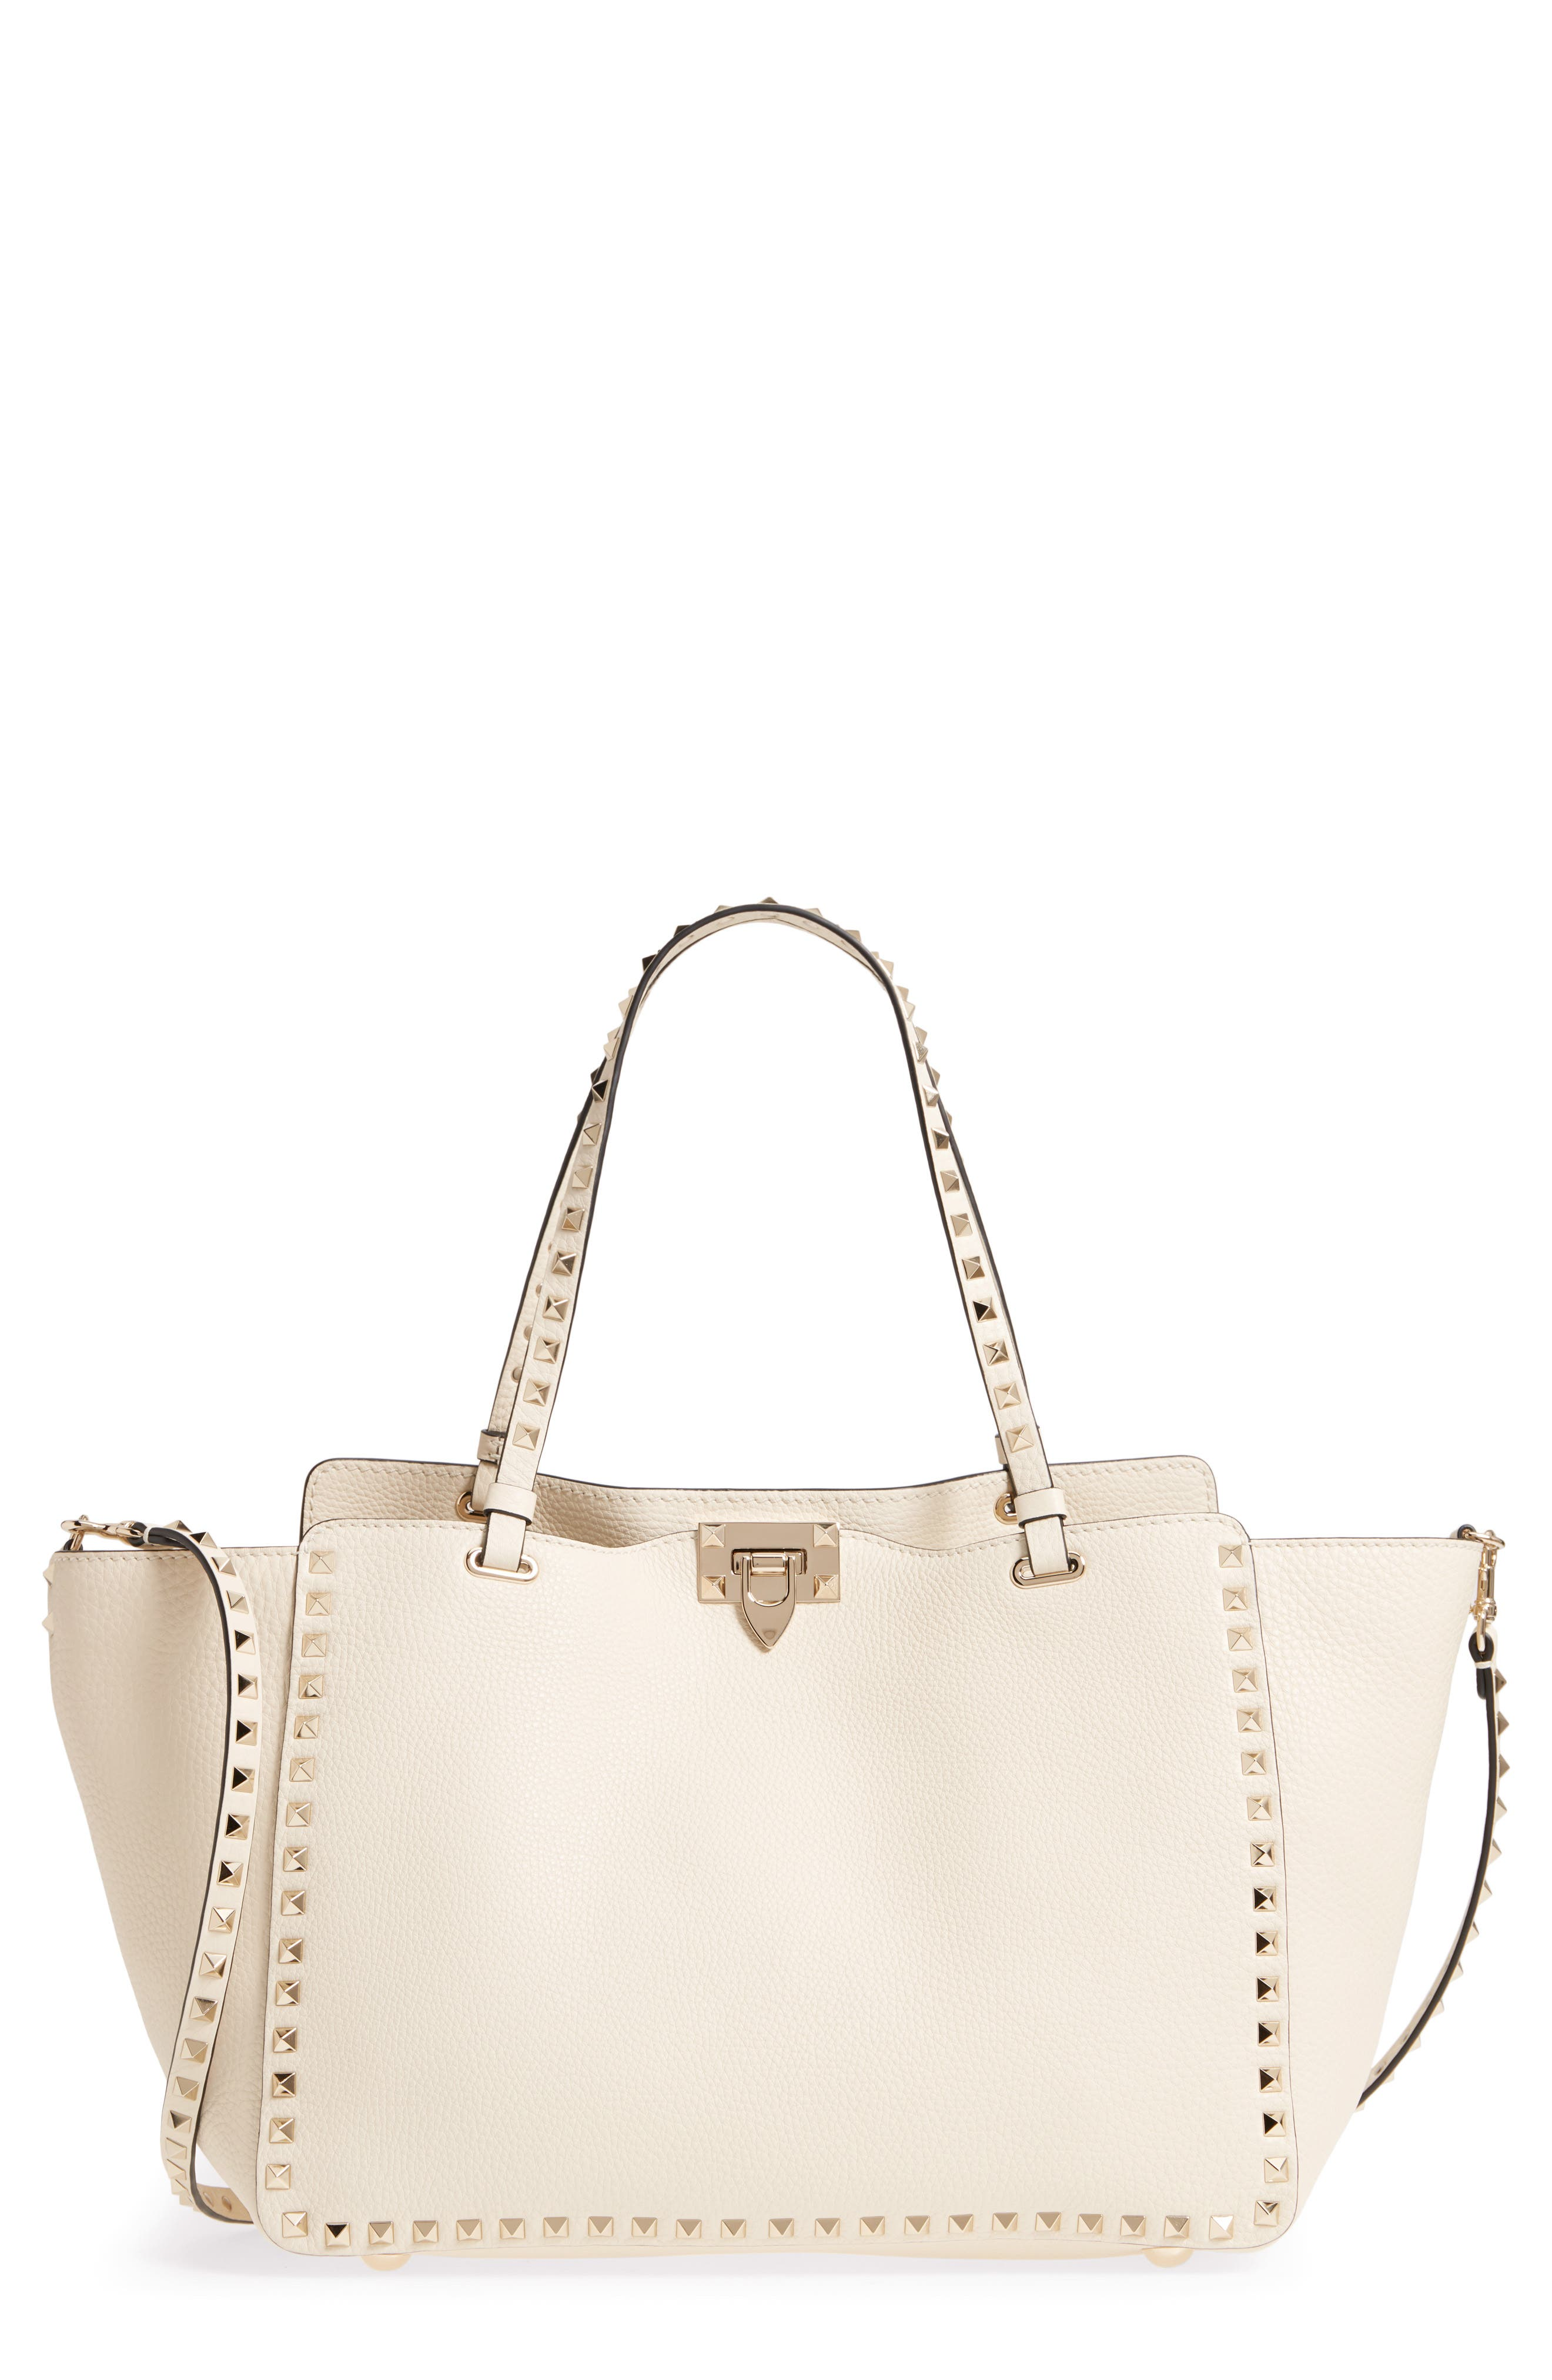 Medium Rockstud Leather Double Handle Tote,                             Main thumbnail 1, color,                             IVORY